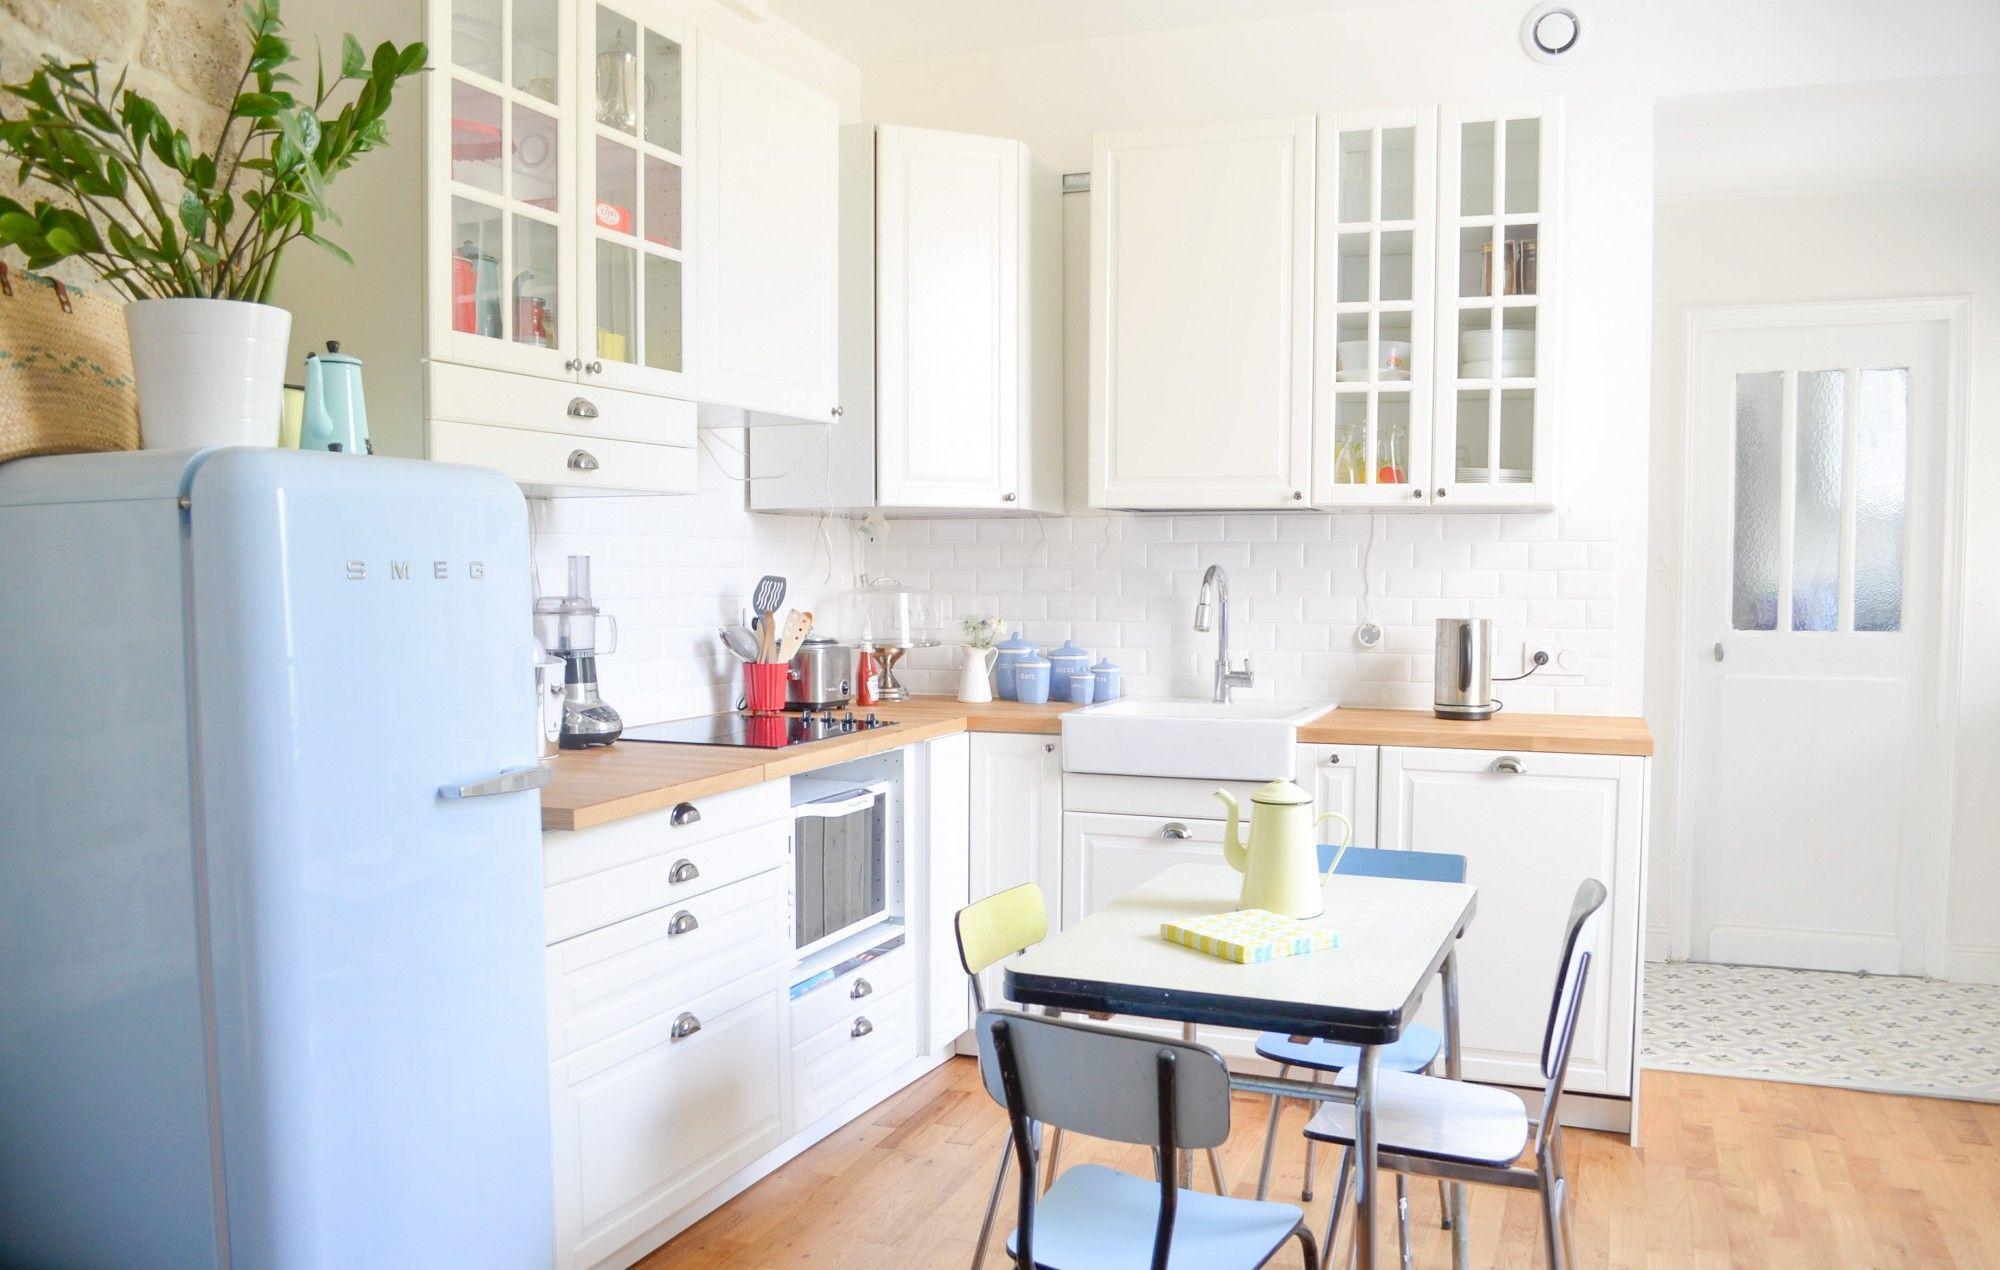 Best Of Facade Cuisine Ikea Metod Kitchen Interior Small Kitchen Cabinets Home Kitchens